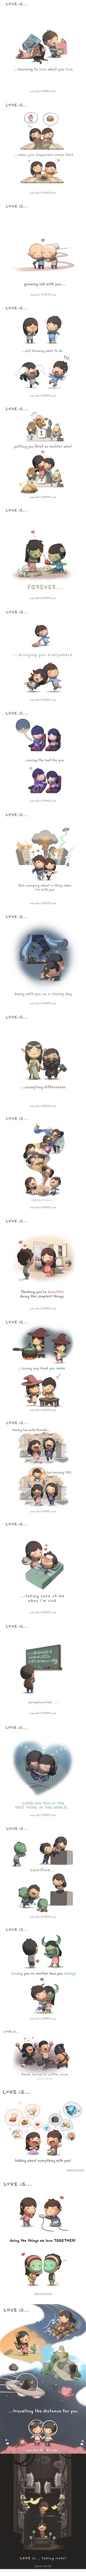 Love is... (Credit: HJ Story) I've been looking for this and I finally found it haha http://9gag.com/gag/adjPBNN?ref=fbp